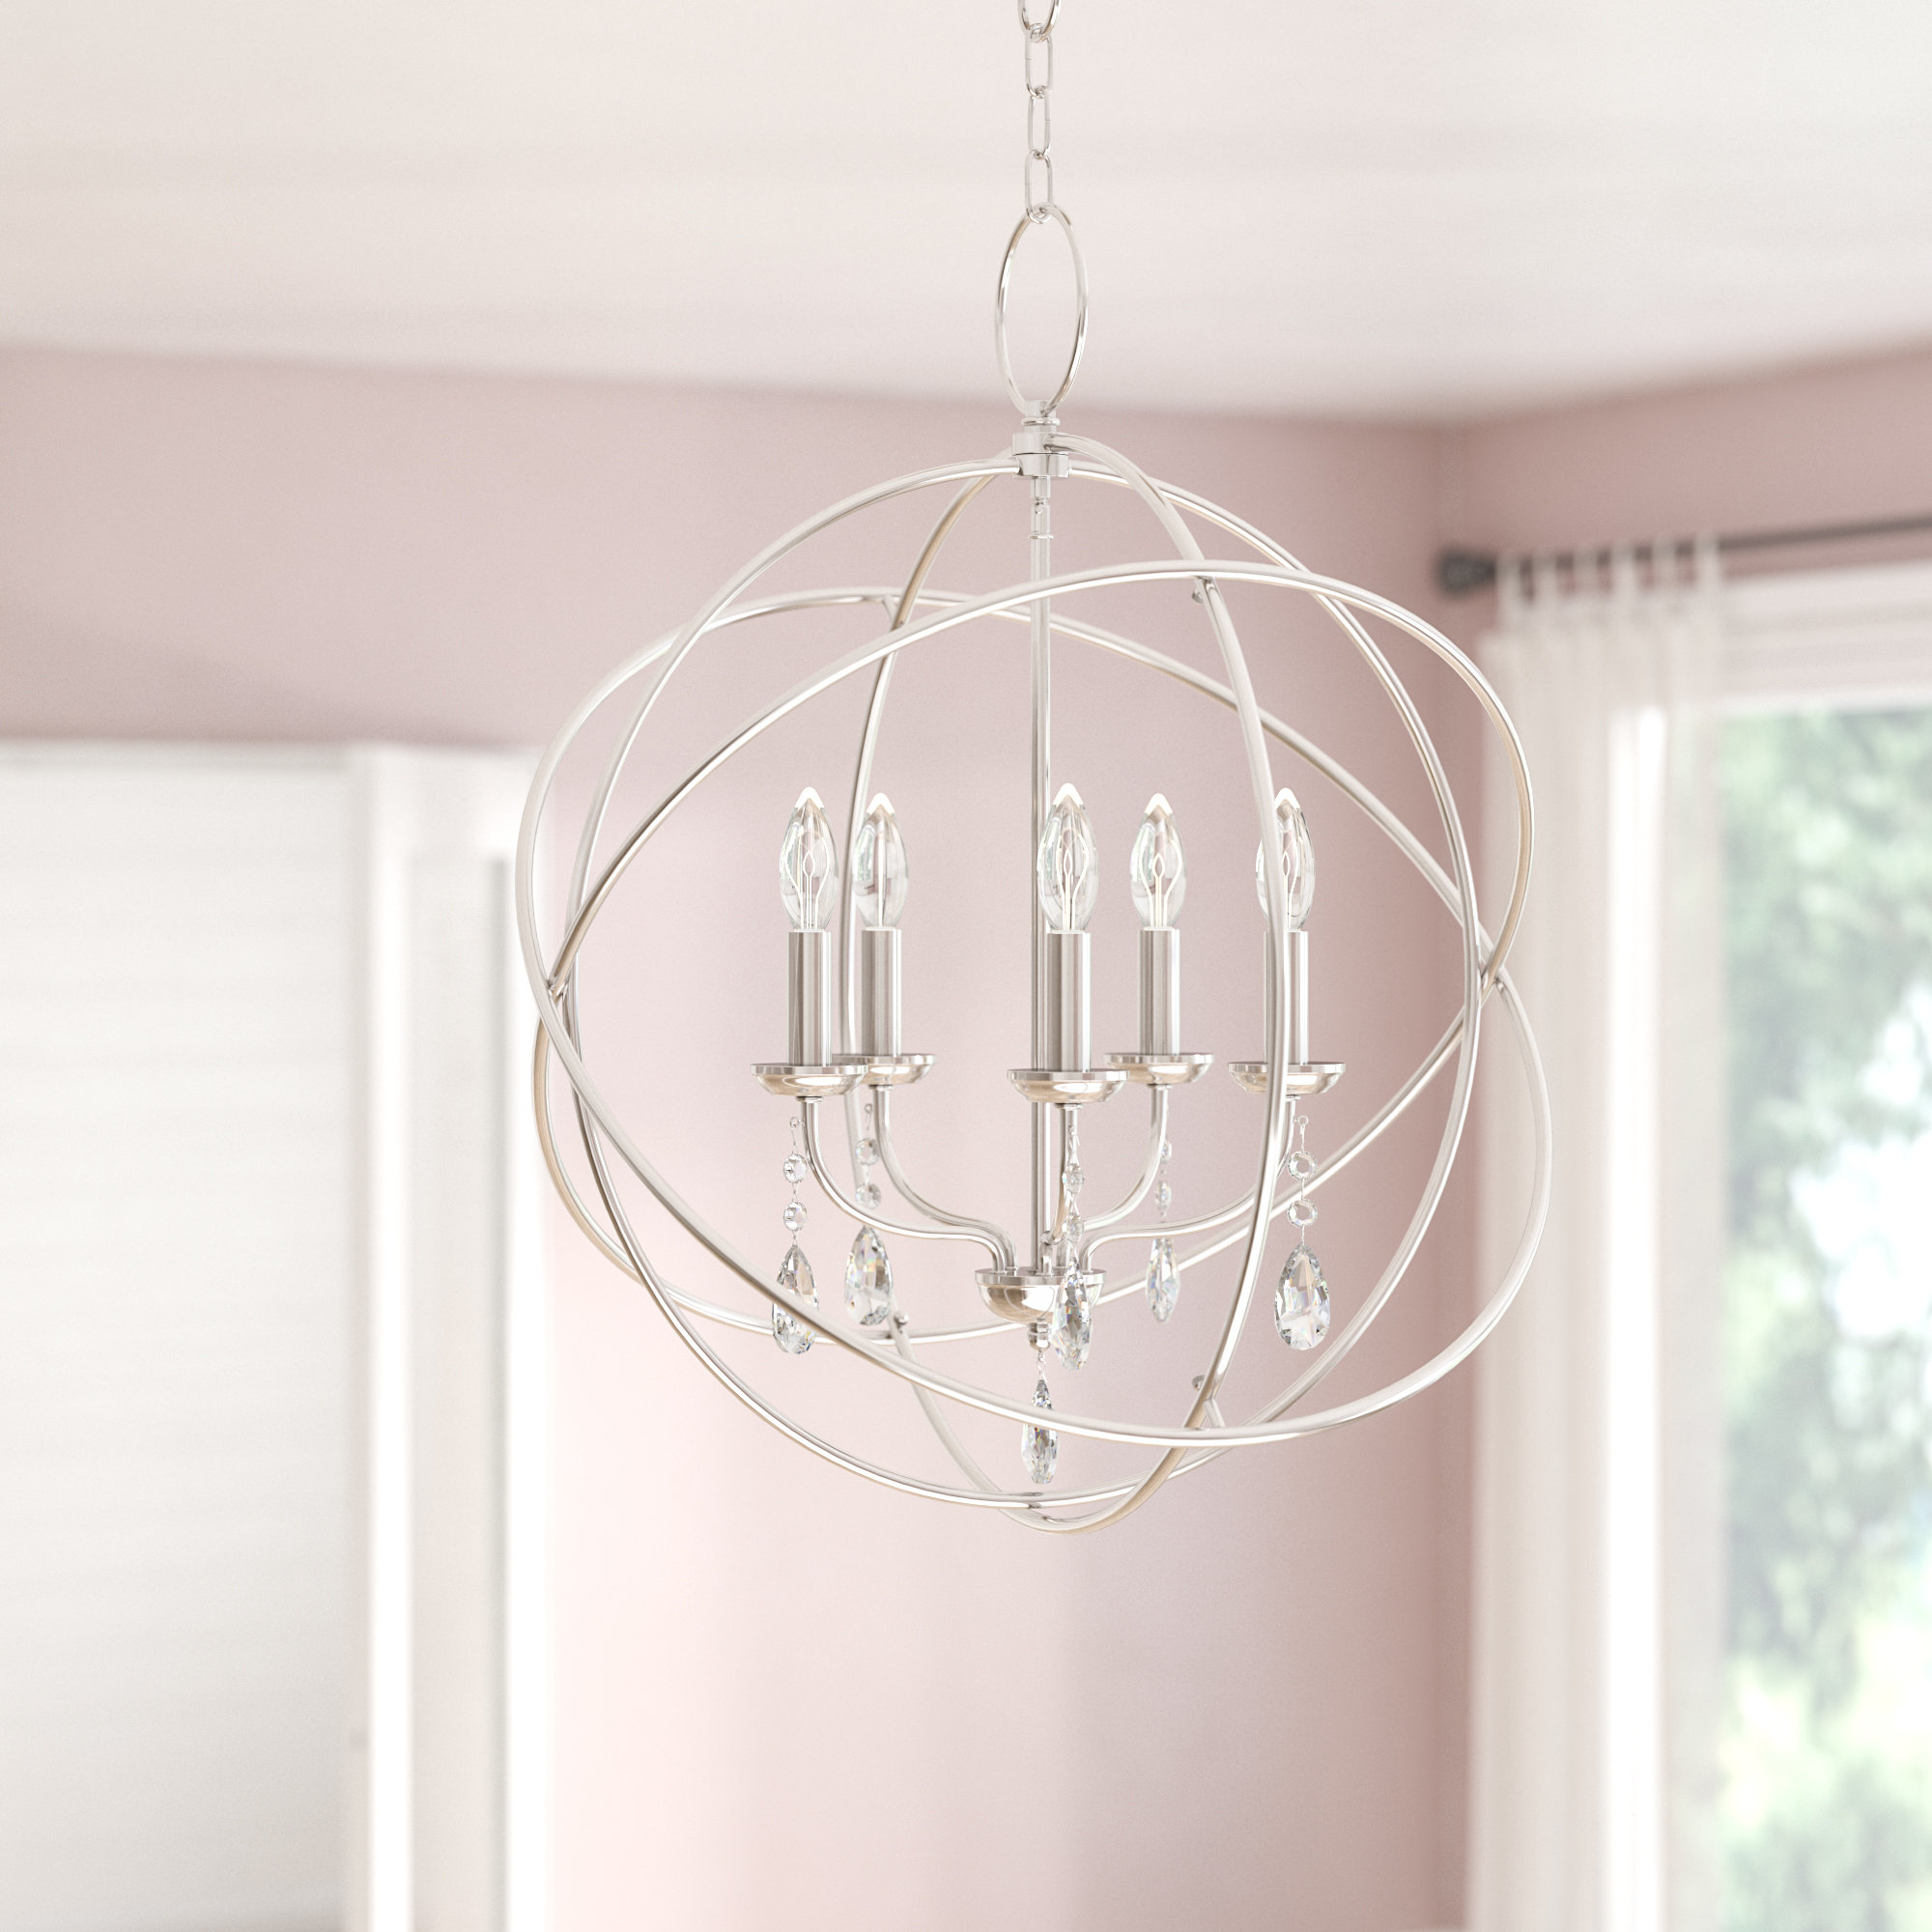 Auberta 5 Light Globe Chandelier Regarding Verlene Foyer 5 Light Globe Chandeliers (View 8 of 30)